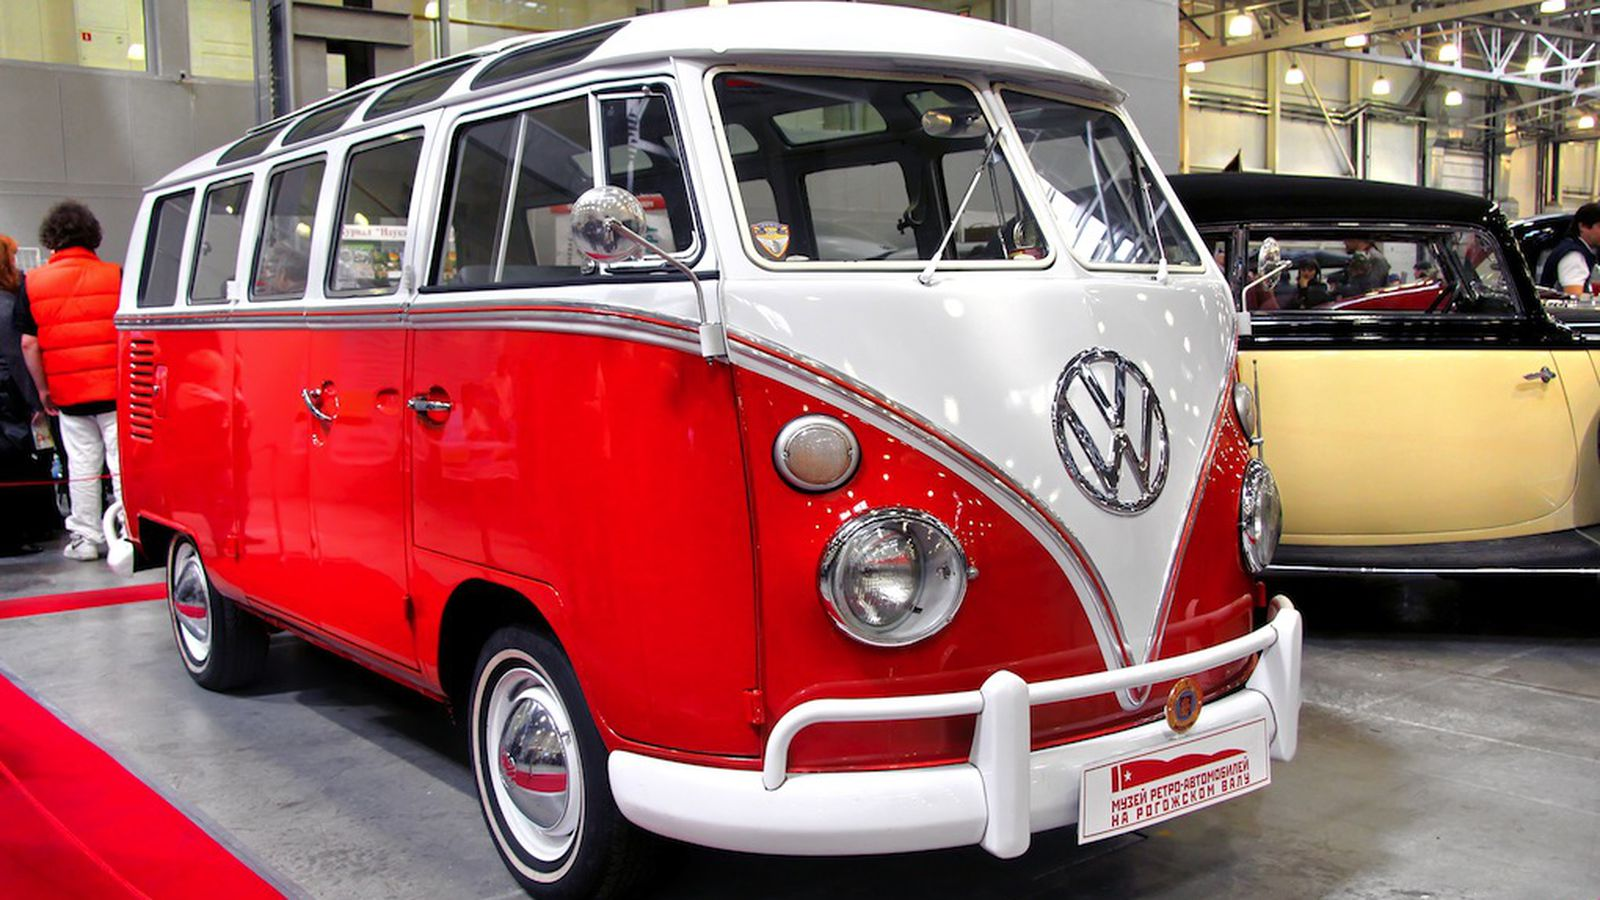 Volkswagen To End Production Of Iconic Hippie Bus This Year The Verge